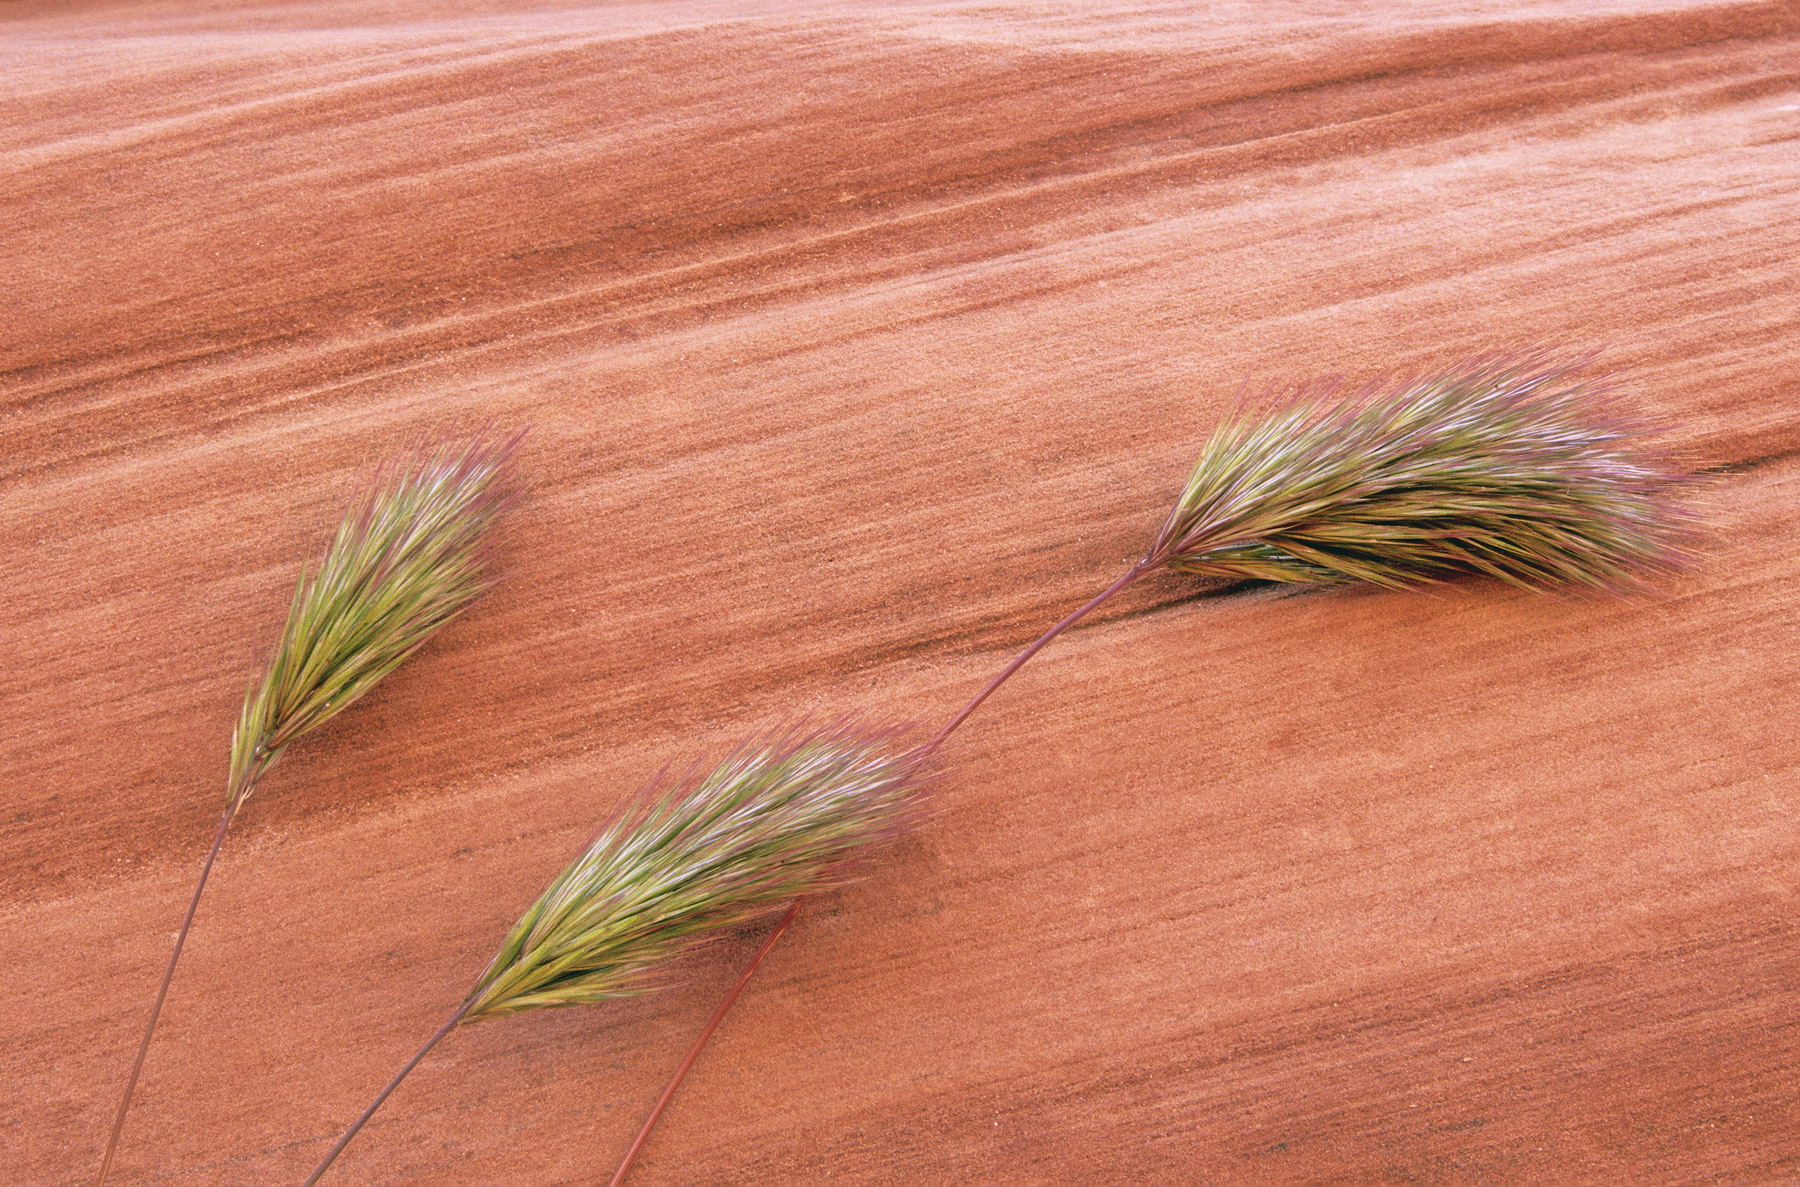 Three little ears of grass blowing against some striated red sandstone bedrock at the entrance to Antelope canyon. I thought...